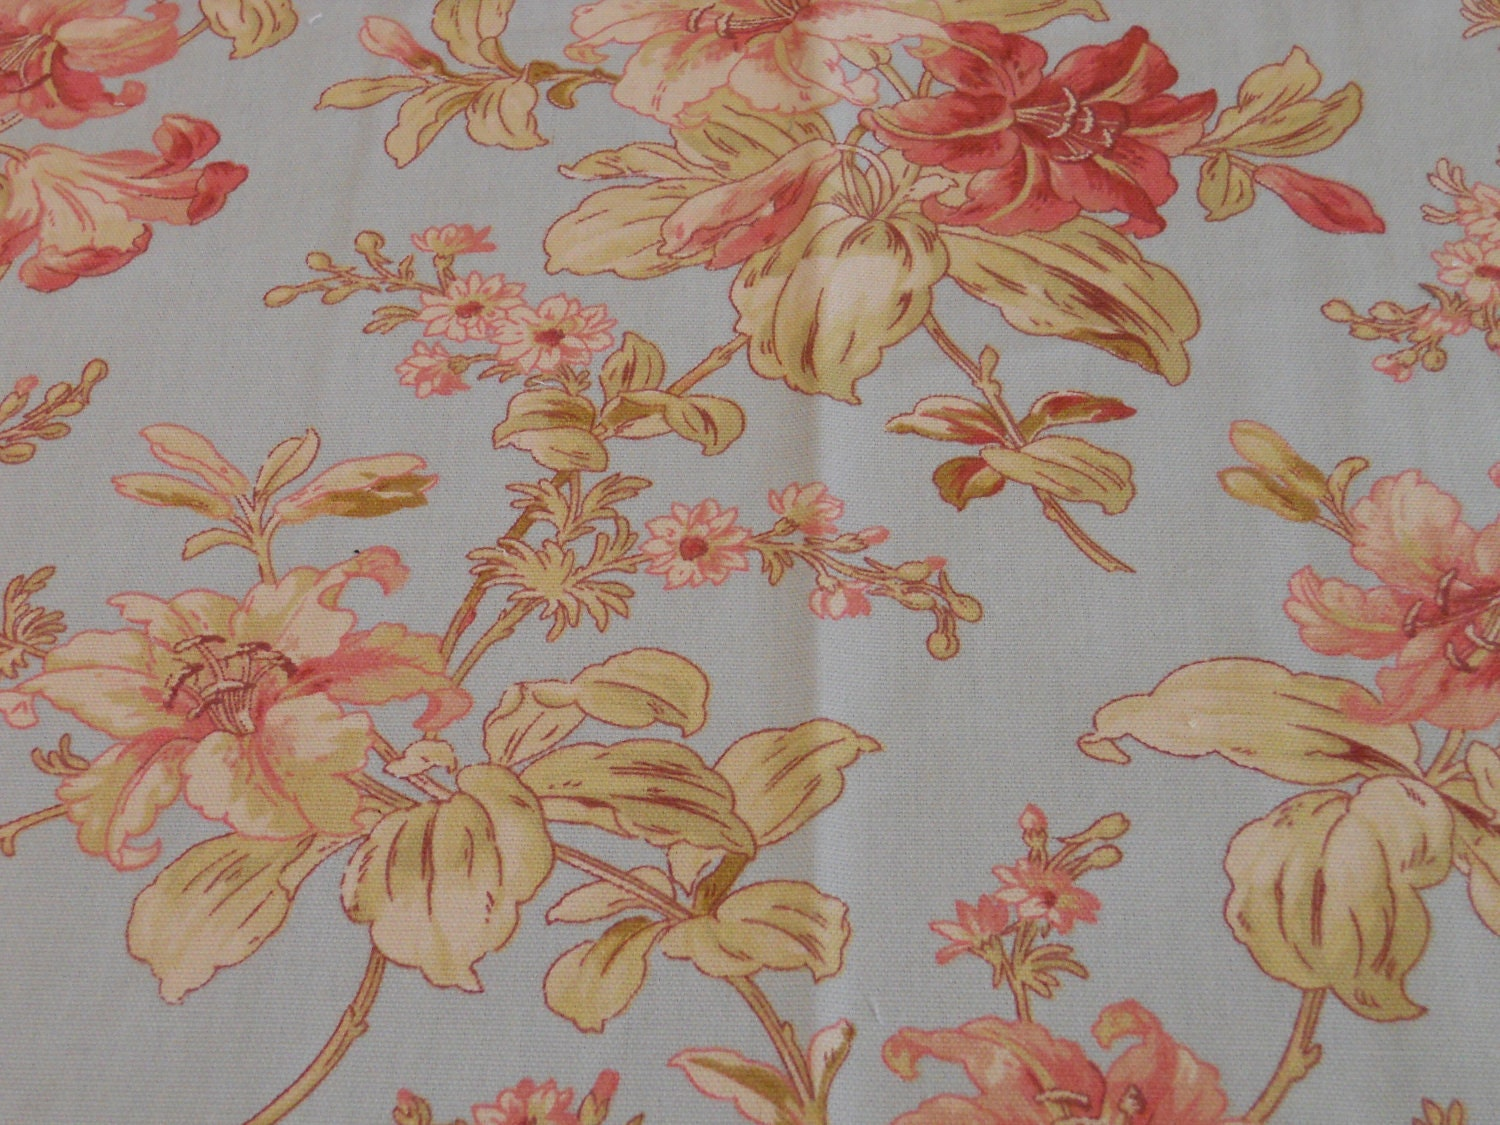 Blue Floral Fabric Waverly Fabric Pink Floral Fabric